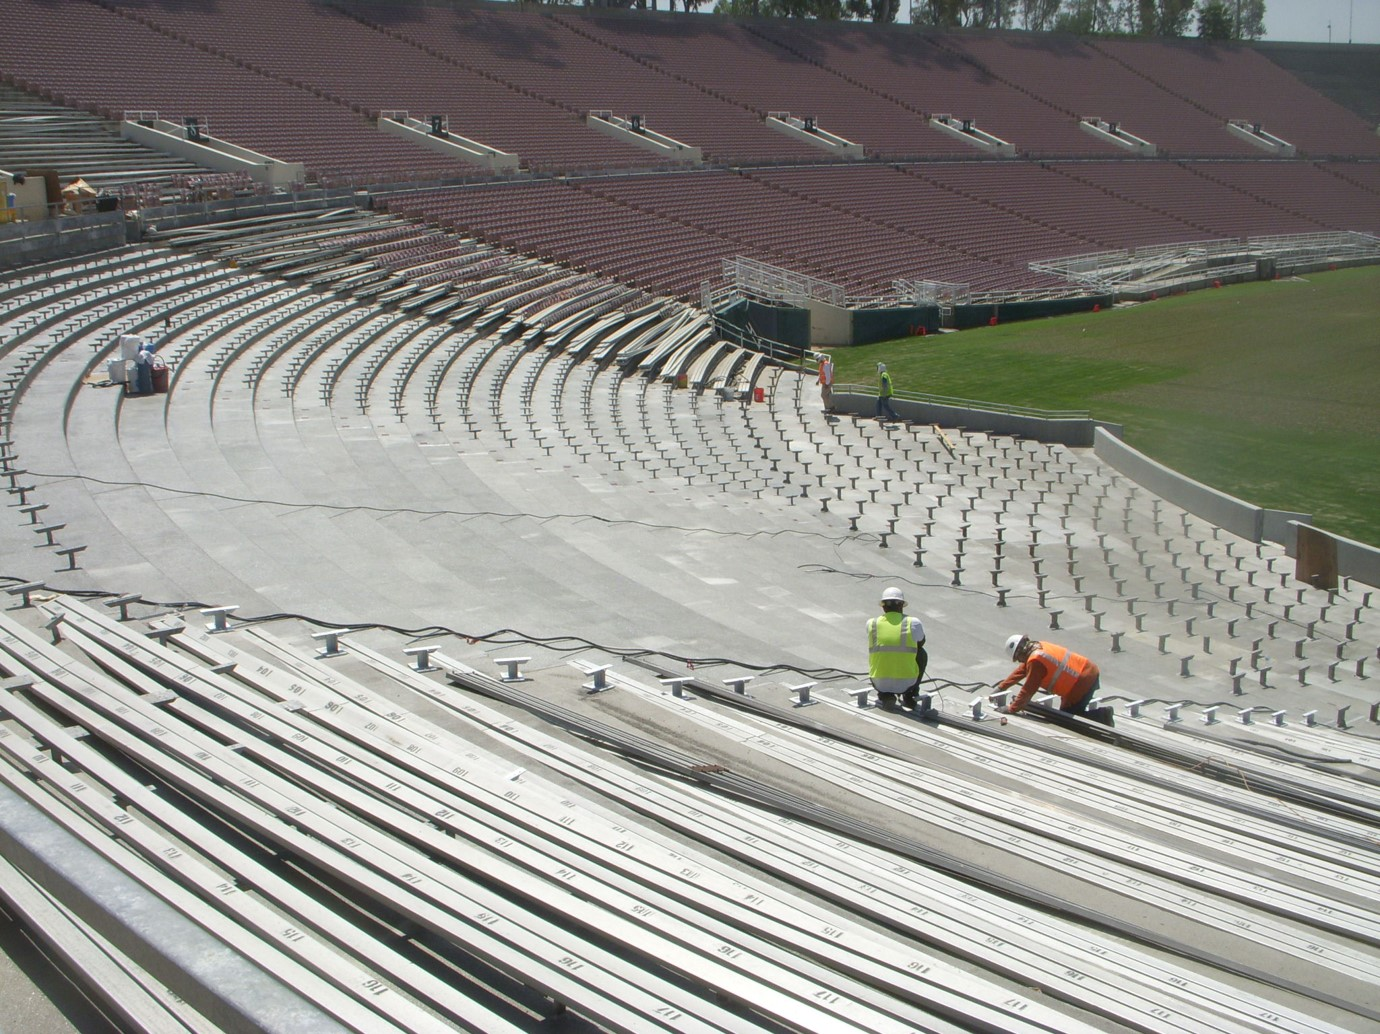 Reinstalling bowl seating on rehabilitated concrete risers by D'AIQ Architects